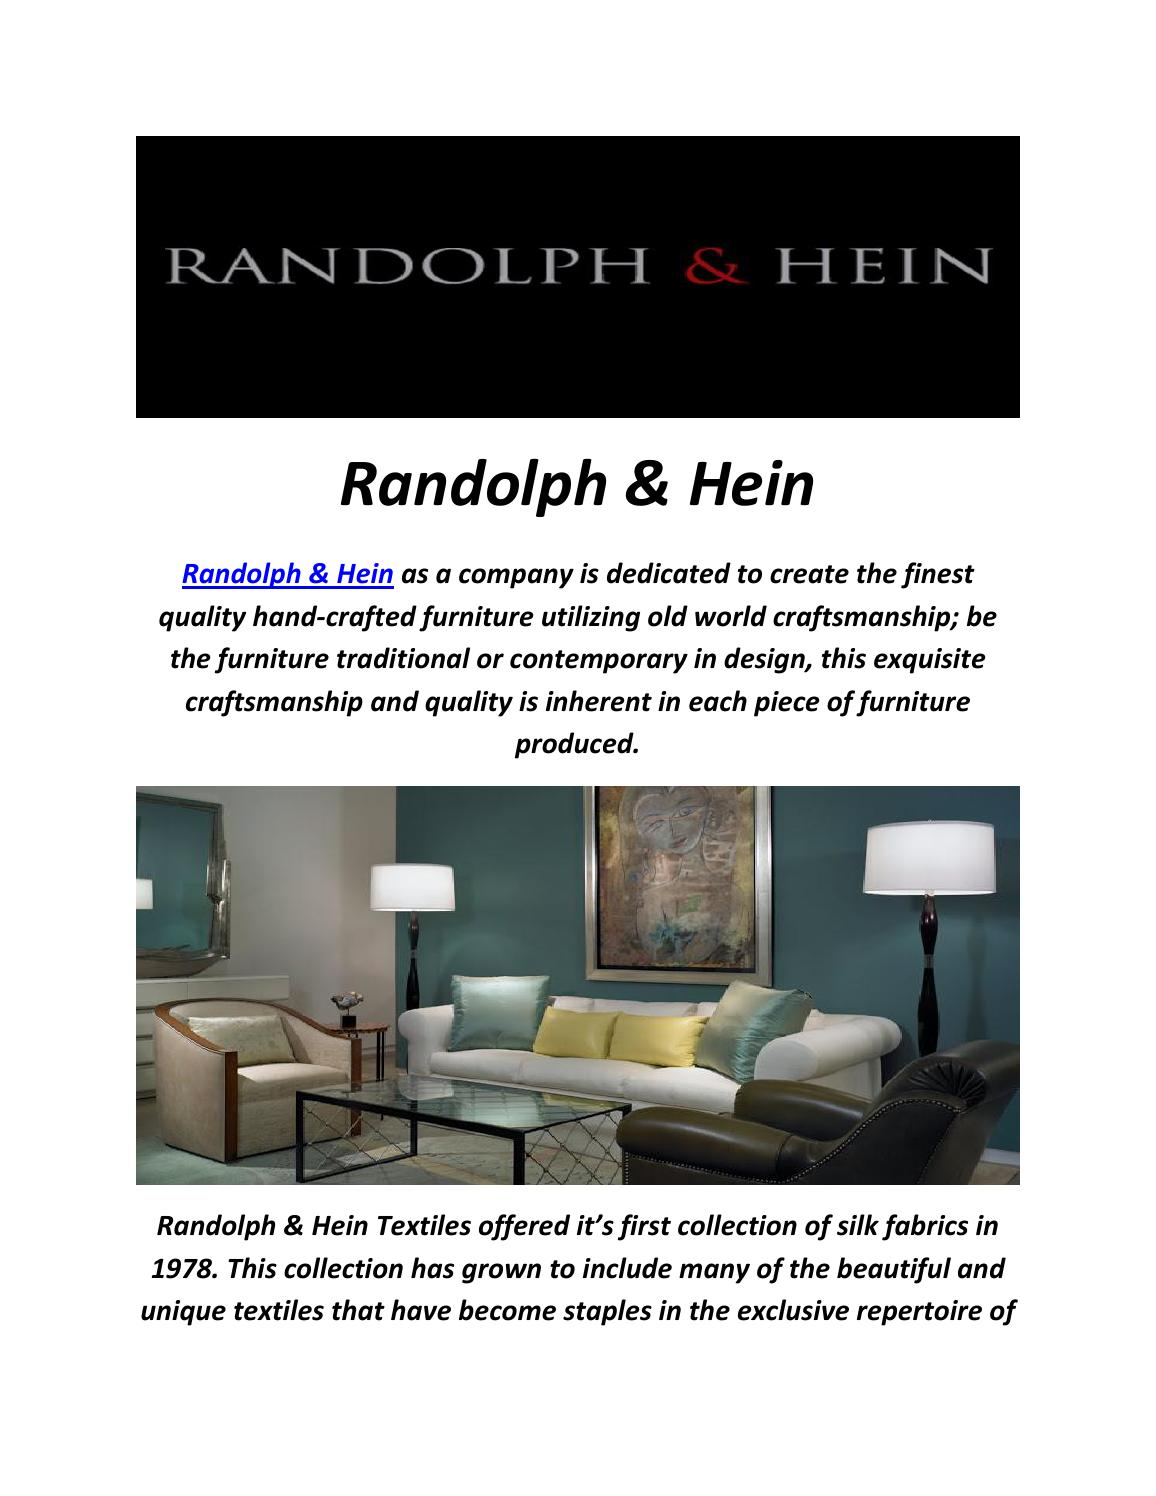 Superb Randolph U0026 Hein : Designer Furniture In Los Angeles By Randolph U0026 Hein    Issuu